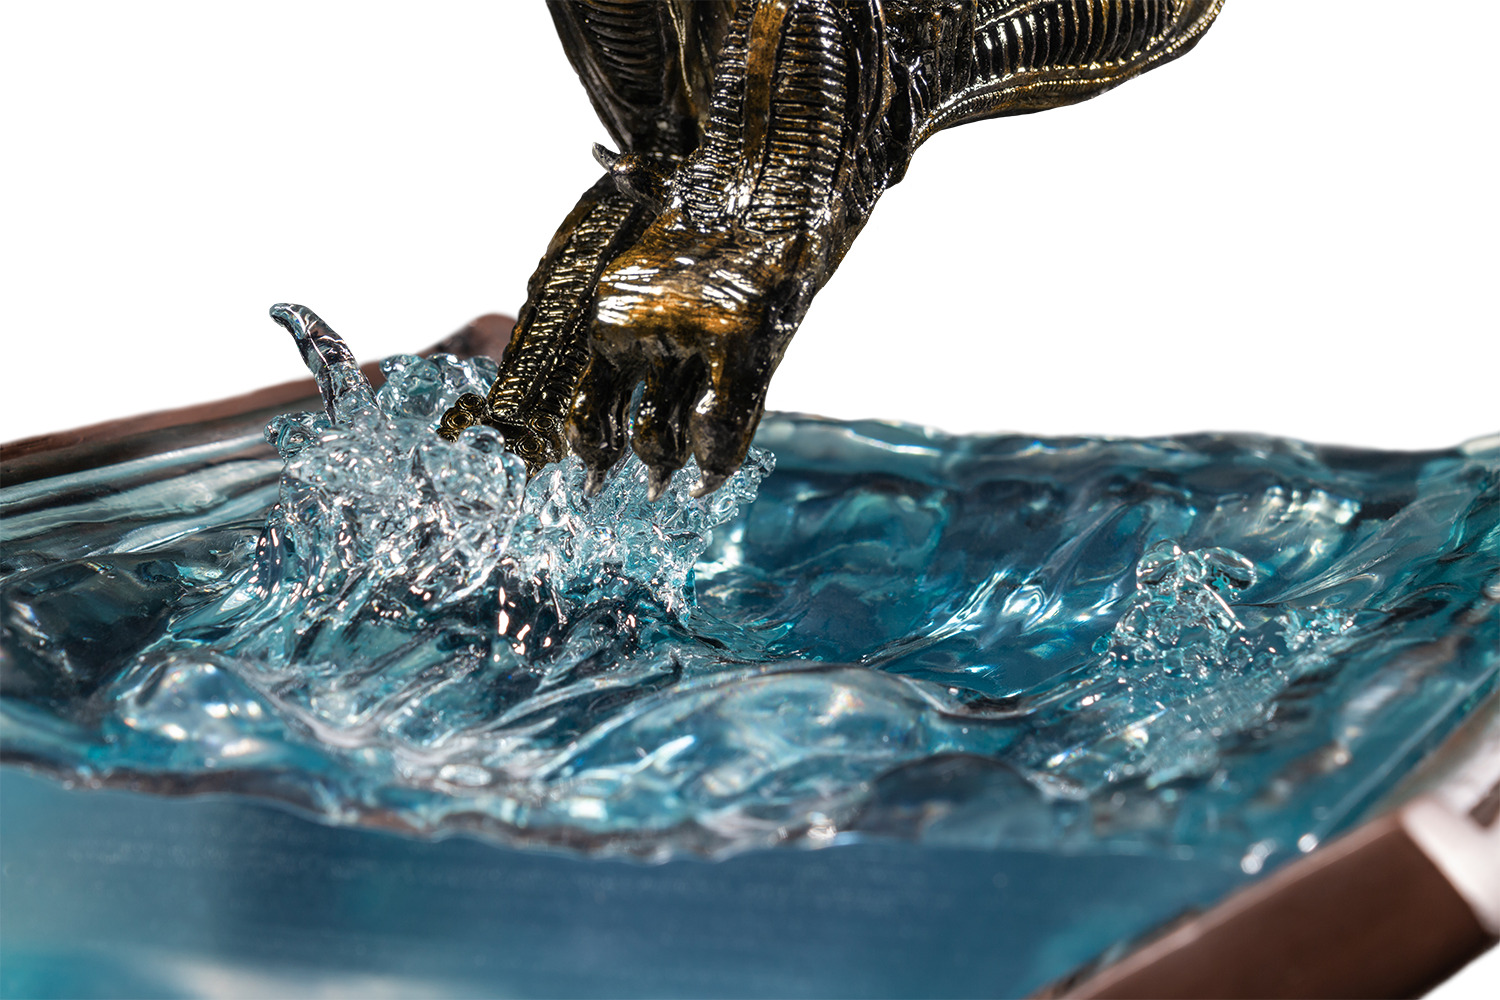 IKO1605-Alien-in-Water-Statue-New-Paint-17-219.png